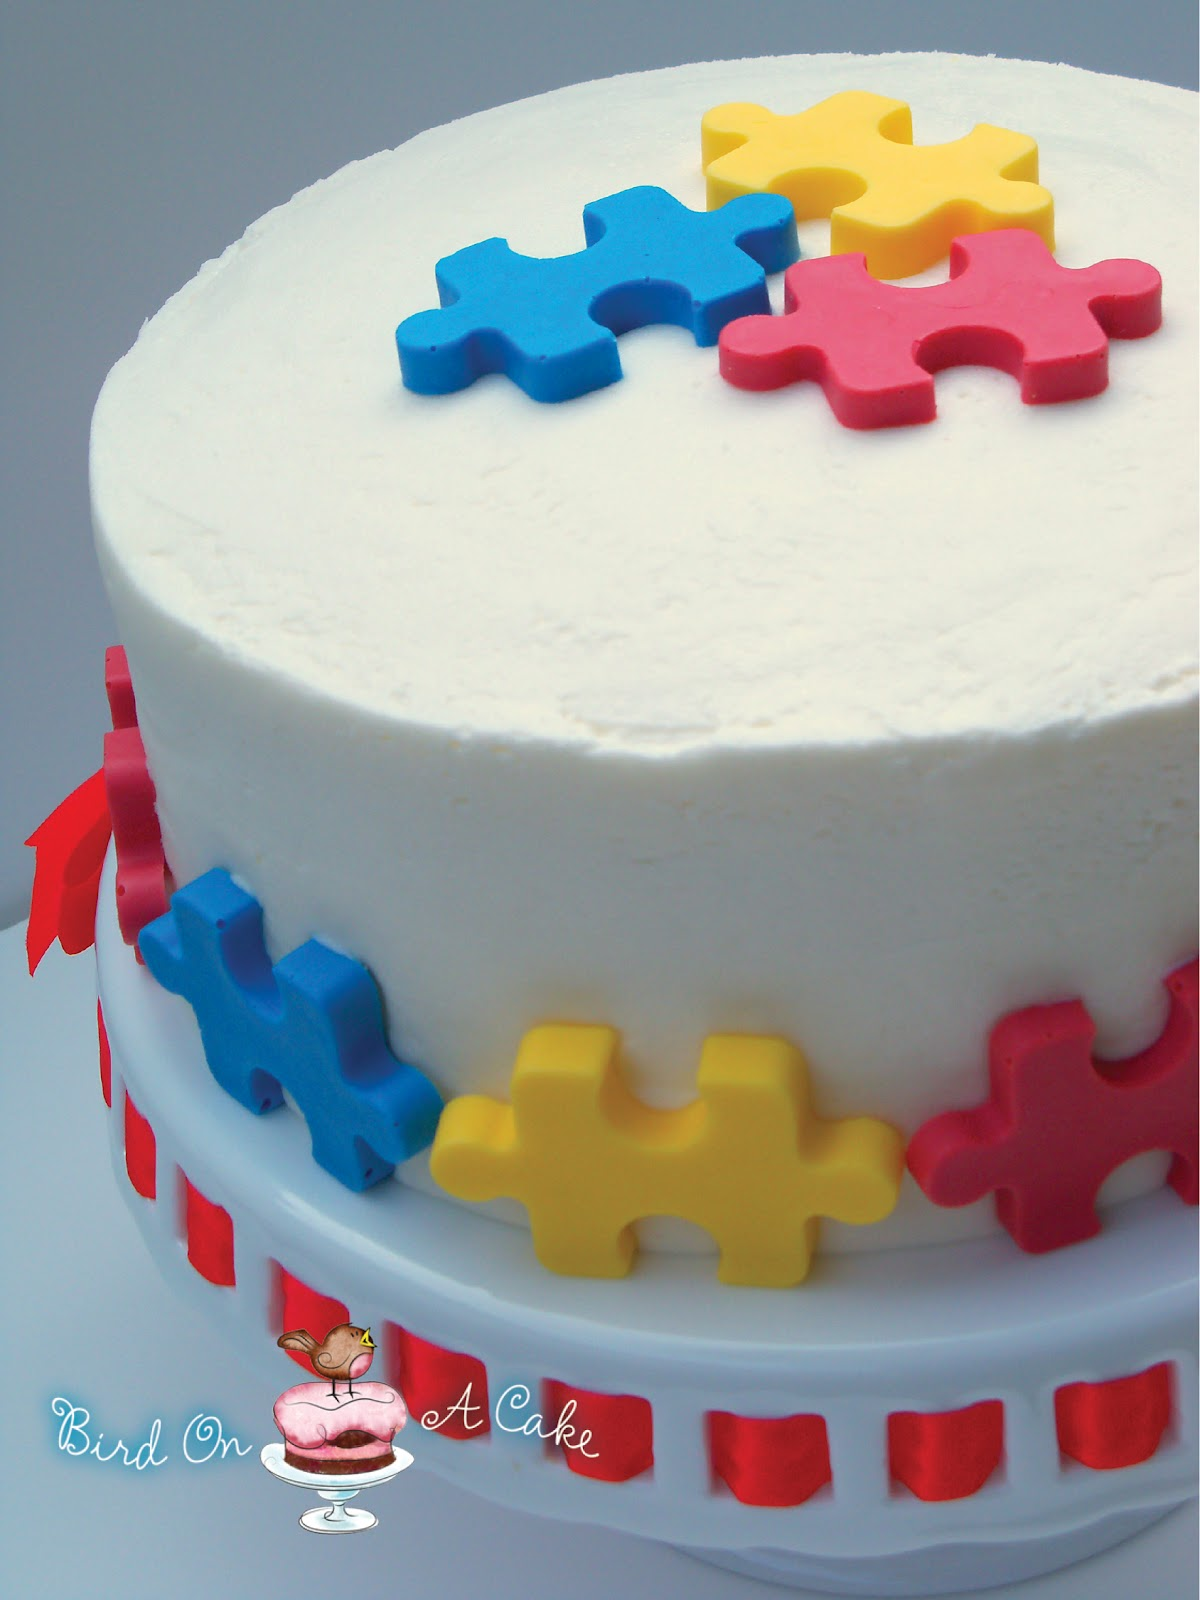 Cake Decorated By Girl With Autism : Bird On A Cake: Puzzle Piece Cake